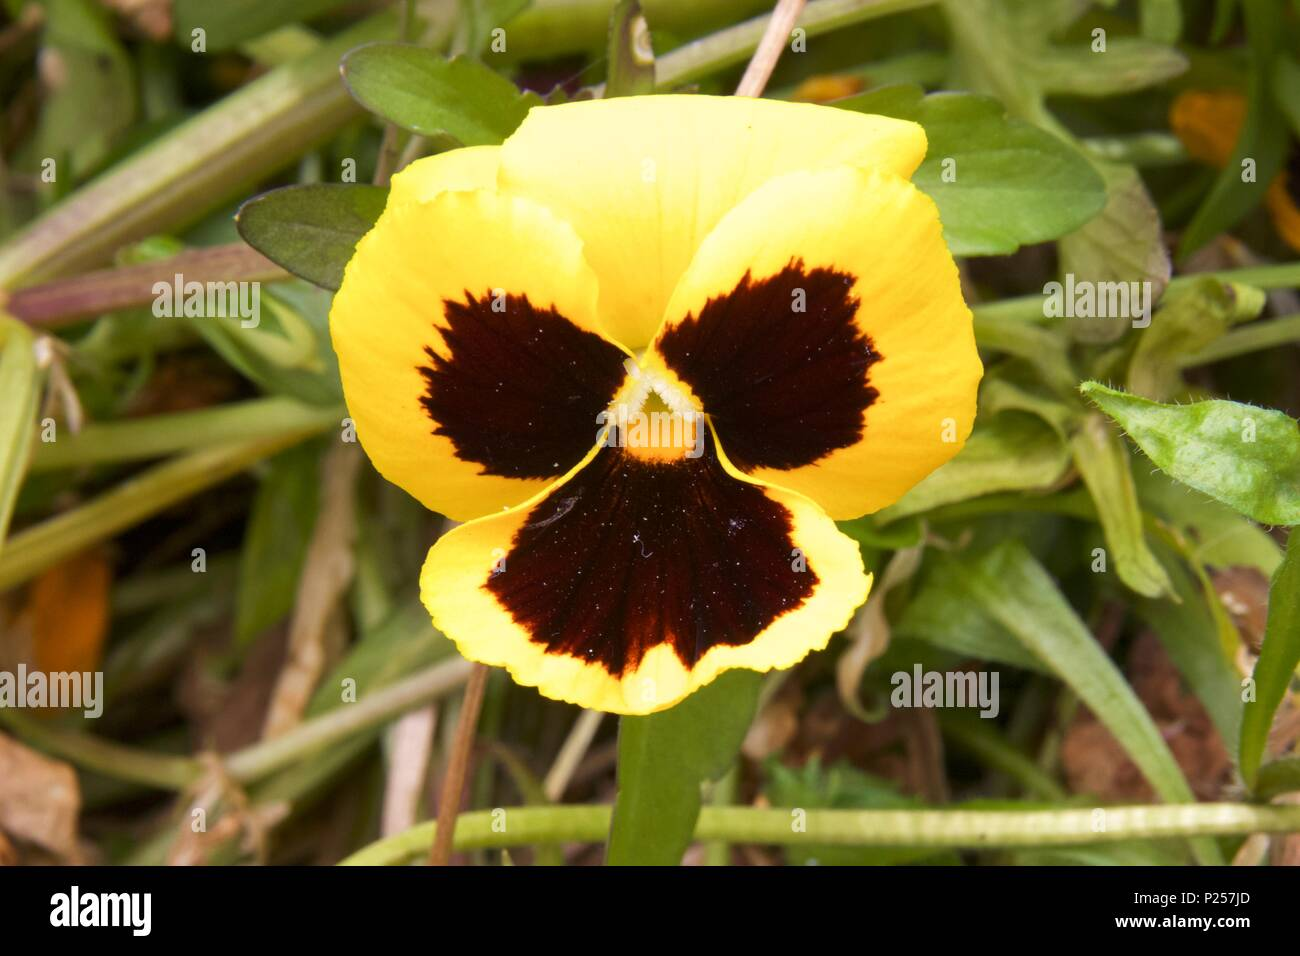 A yellow pansy, also known as viola x wittrockiana and viola tricolor hortensis, is a hybrid plant - Stock Image